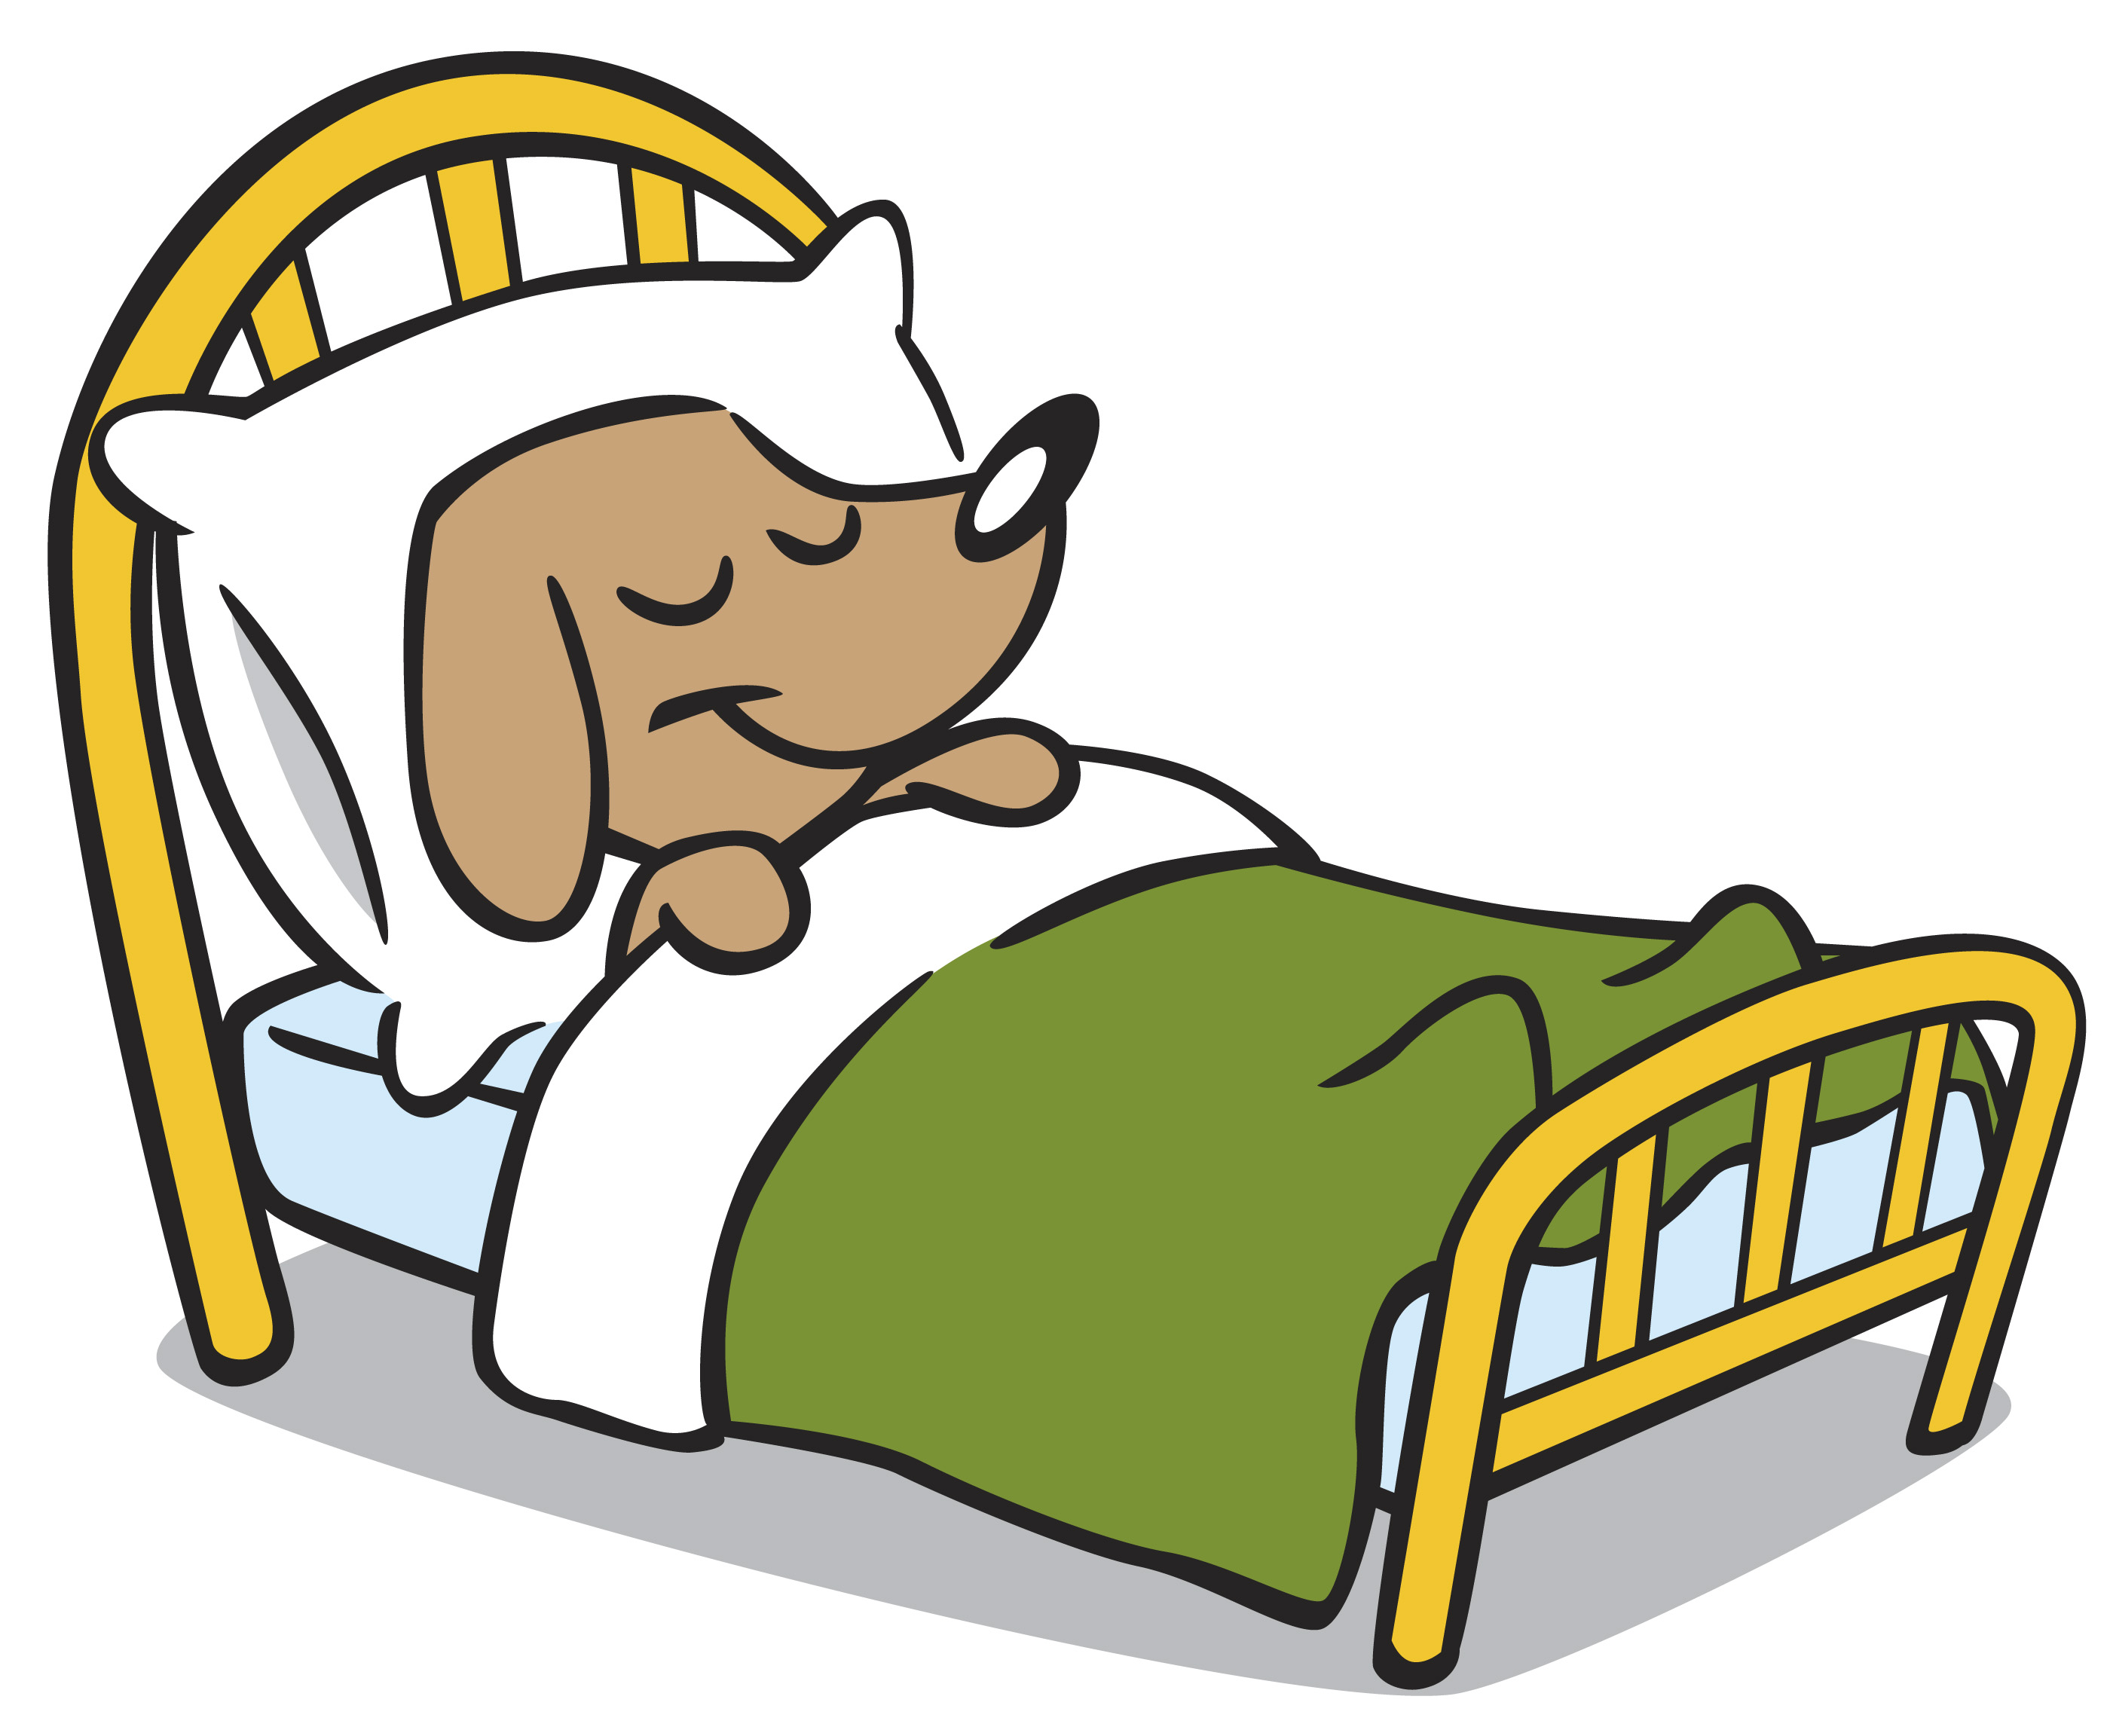 Hotel clipart airplane Free (1349) Clipart Clipart Bed